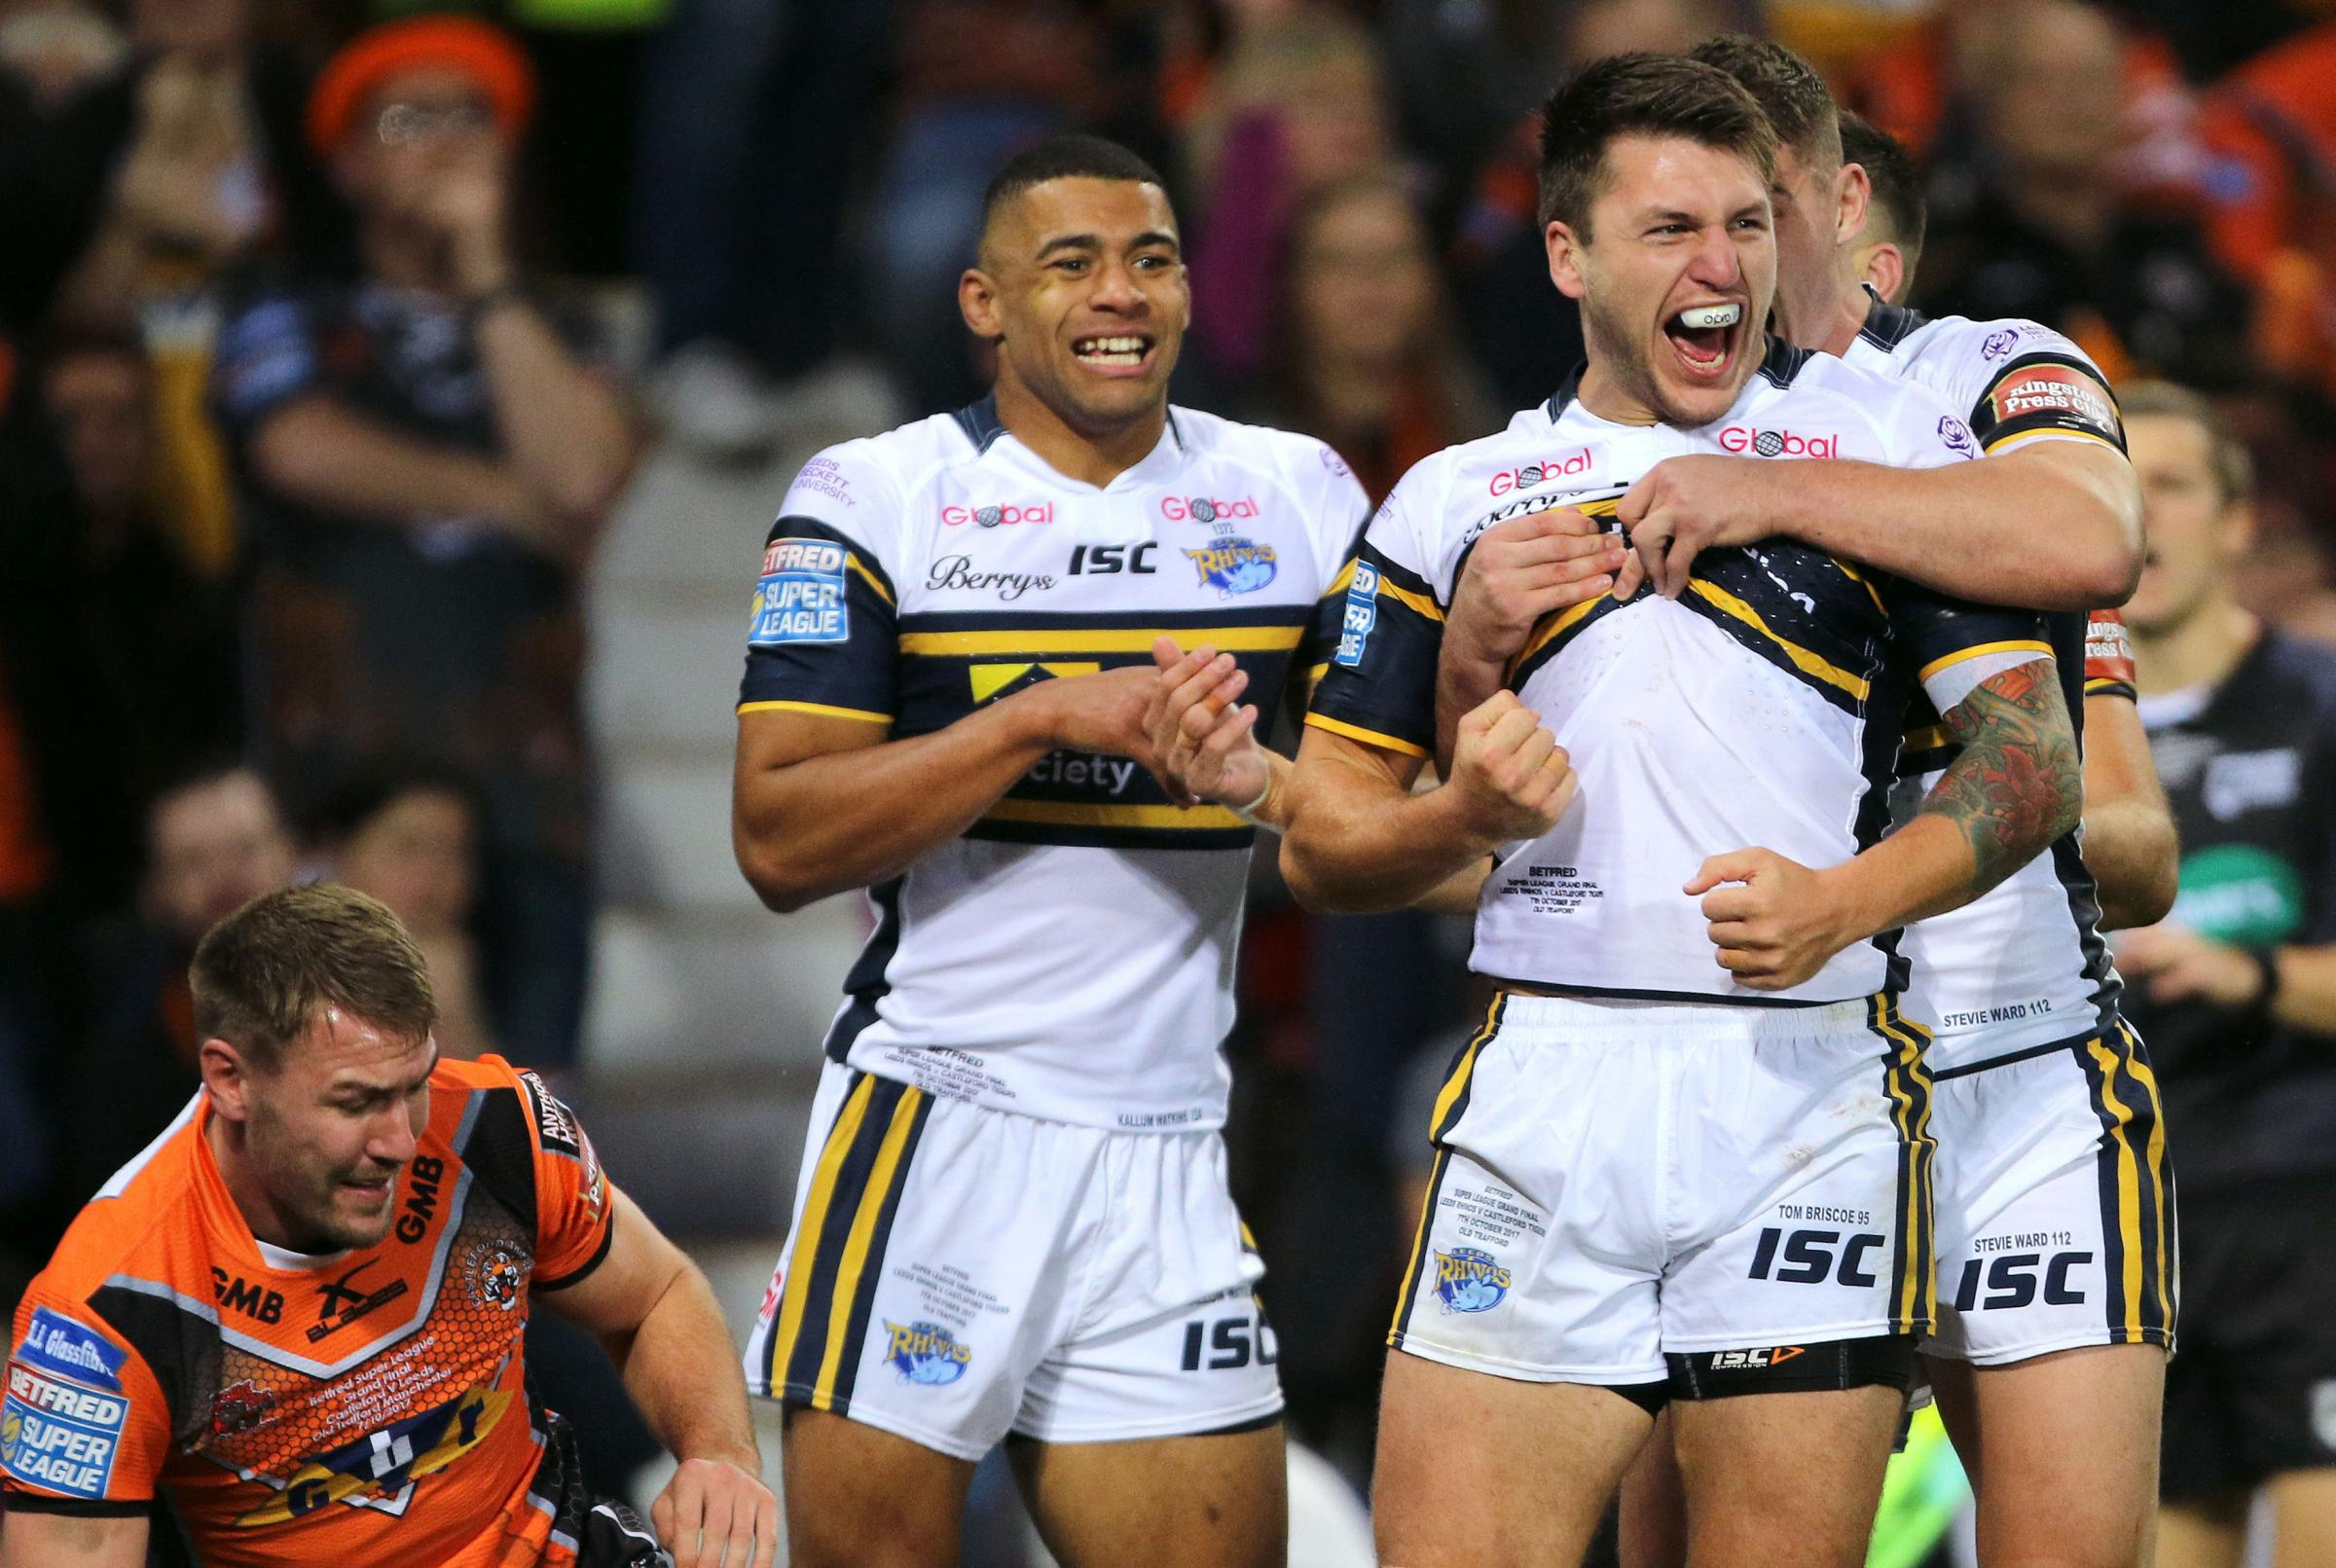 Leeds Rhinos' Tom Briscoe, pictured here celebrating a try against Castleford, was also on the mark against Hull KR